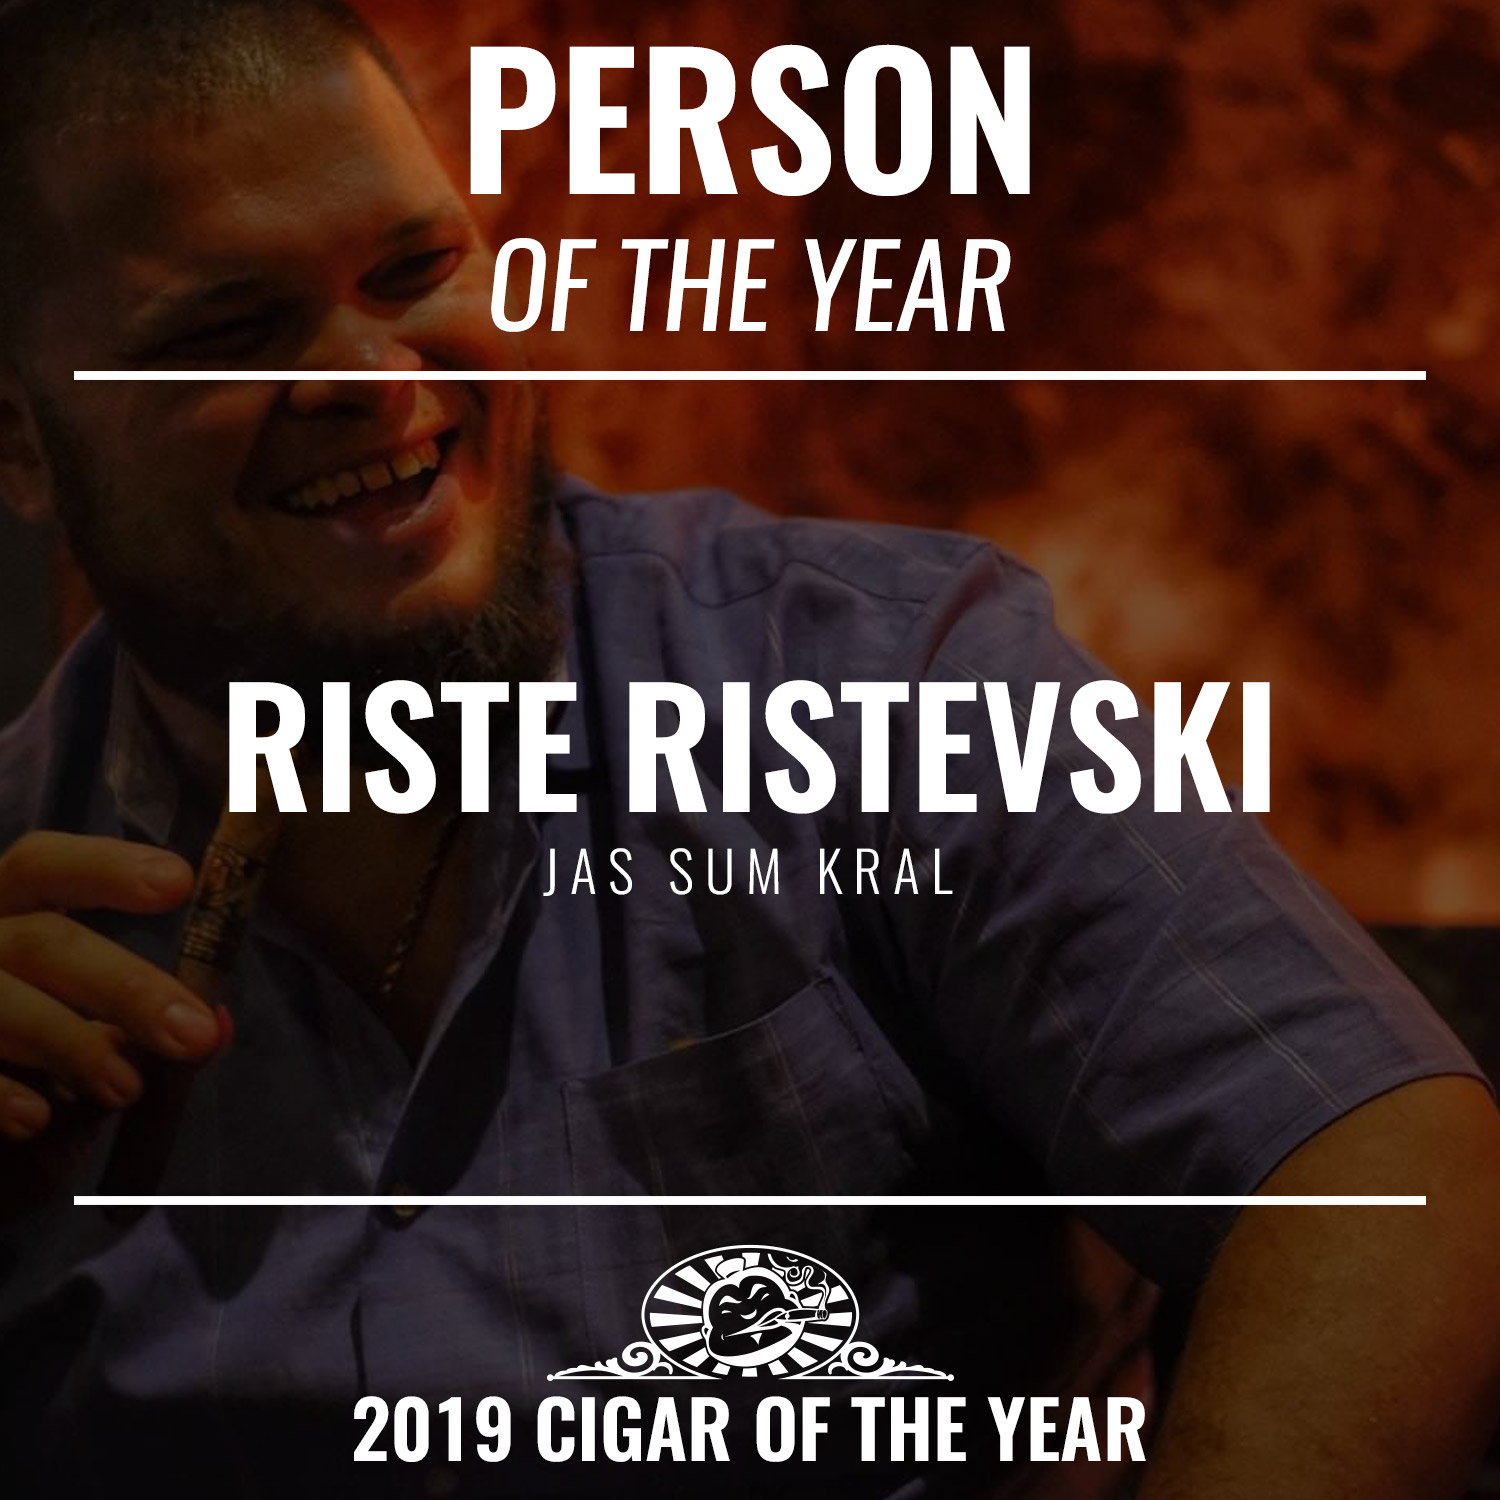 Riste Ristevski Cigar Person of the Year 2019